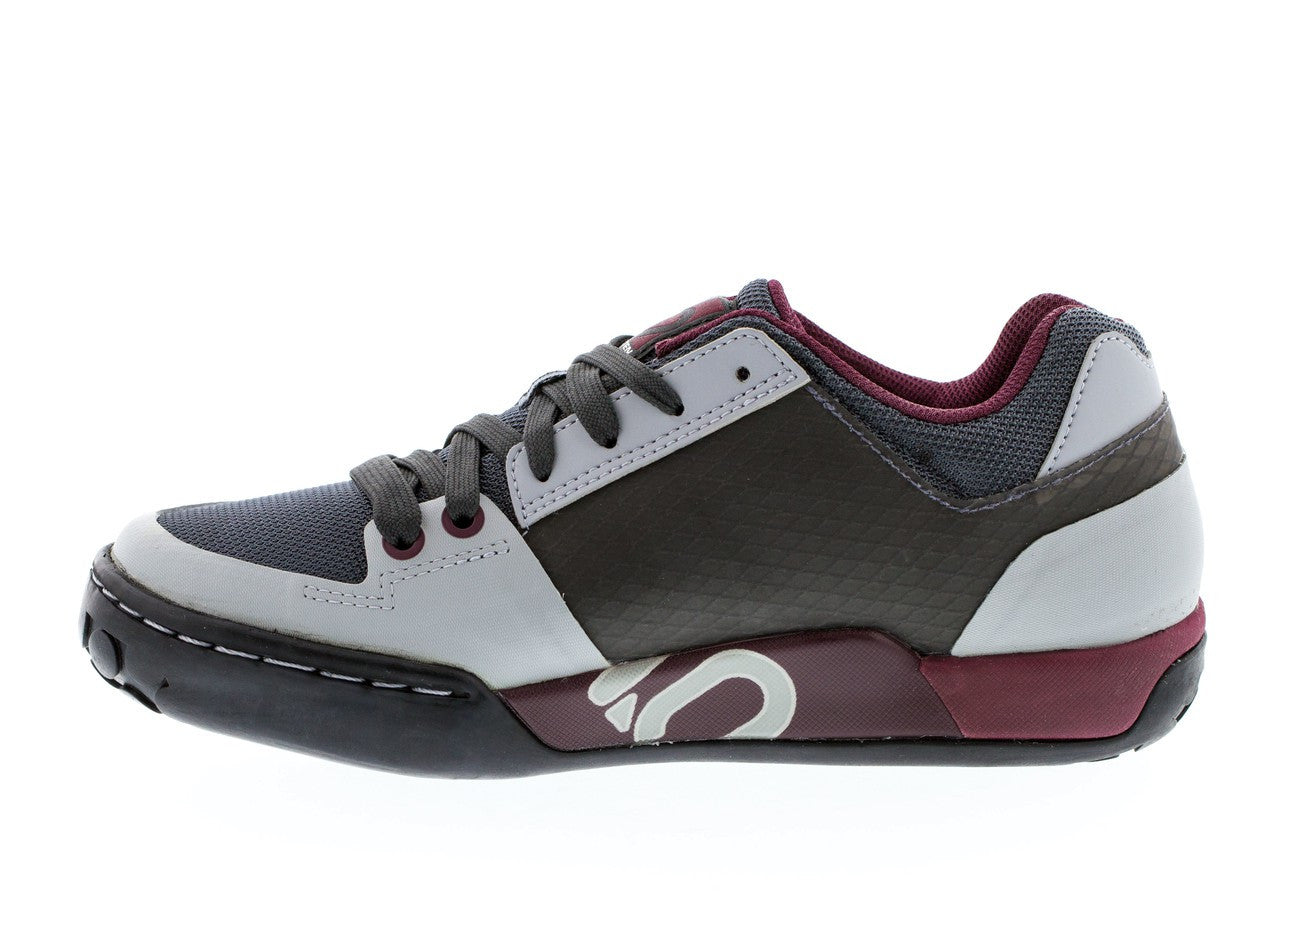 Freerider Contact - Maroon/Grey by Fiveten